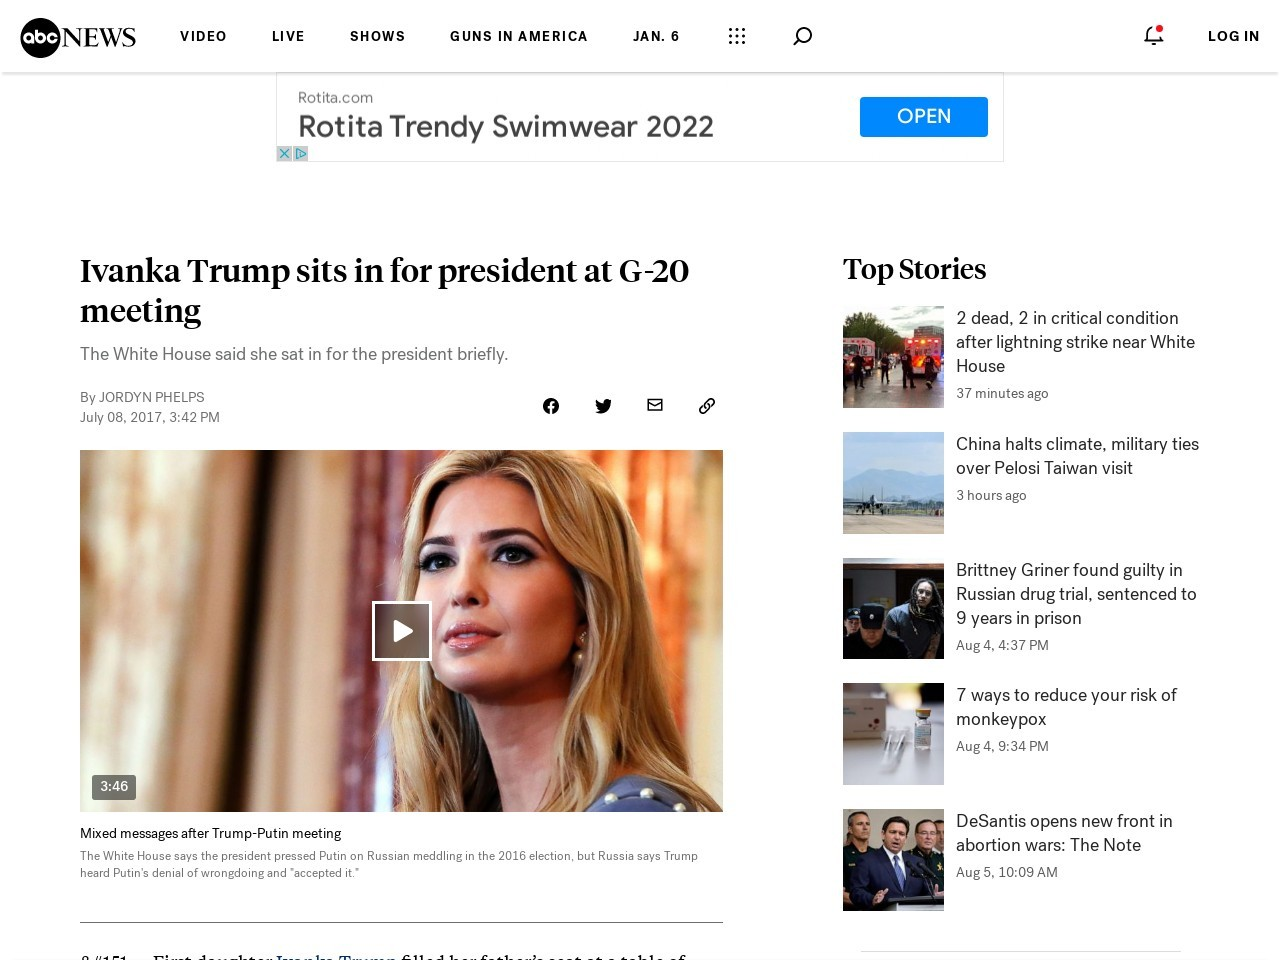 Ivanka Trump sits in for president at G-20 meeting